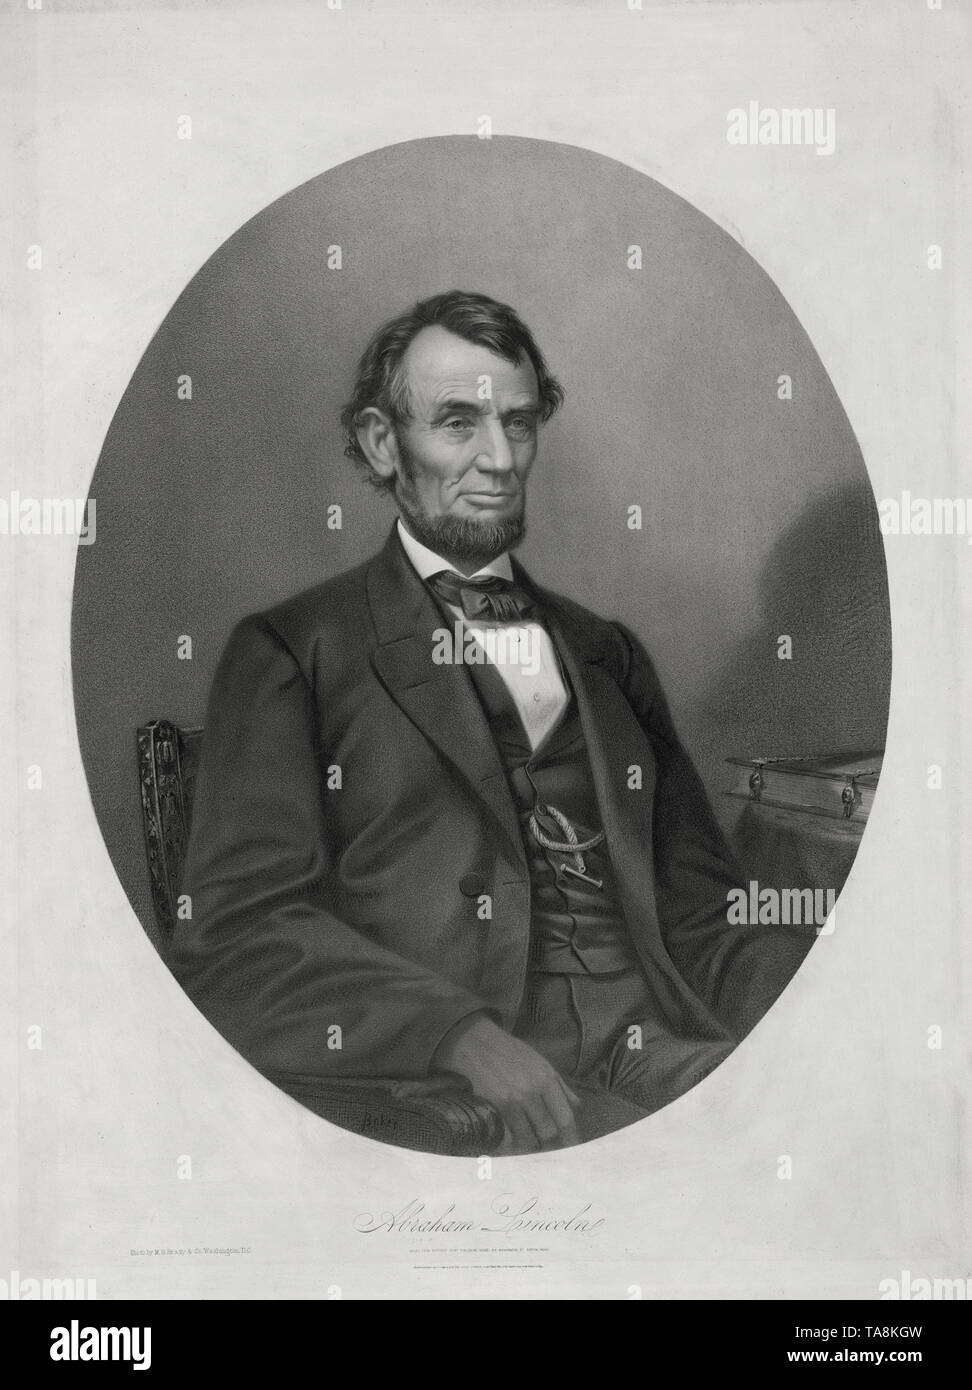 Half-Length Seated Portrait of Abraham Lincoln, Lithograph by Joseph E. Baker from a Photograph by  M.B. Brady & Co., Printed and Published by Bufford's Print Publishing House, Boston, Massachusetts, 1865 - Stock Image